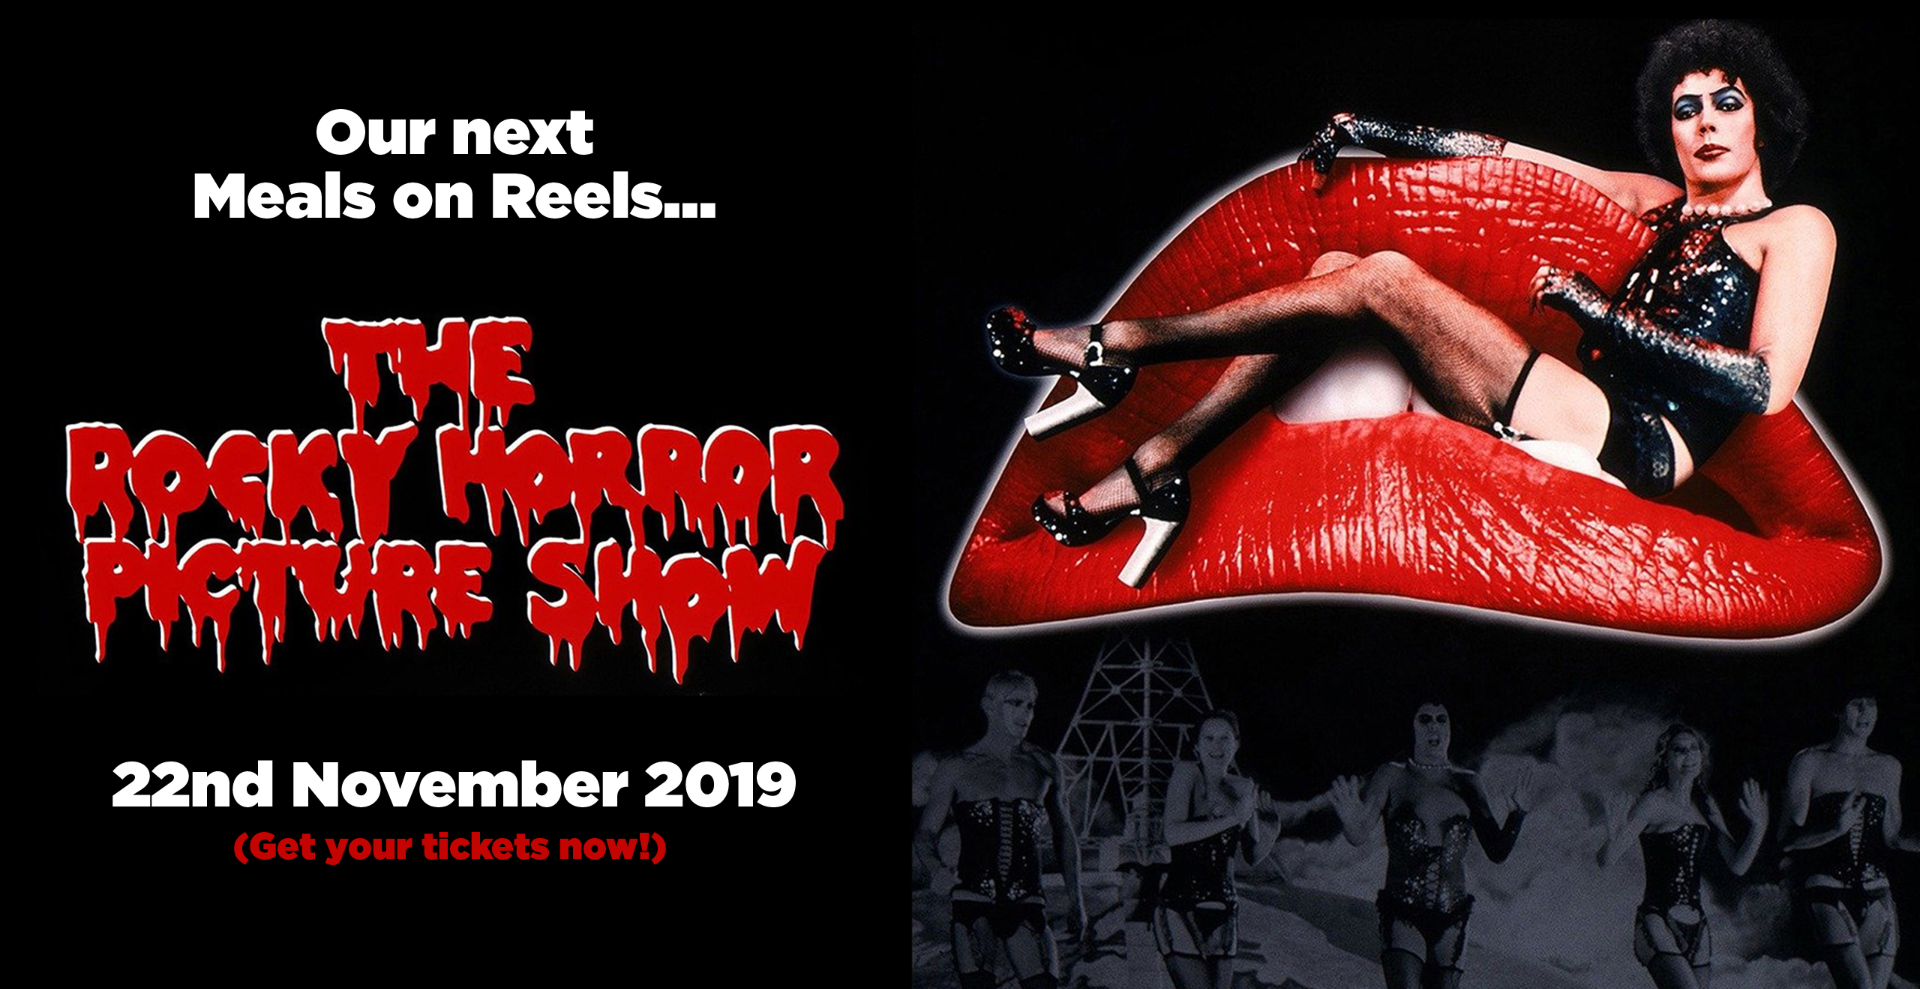 Meals on Reels // The Rocky Horror Picture Show